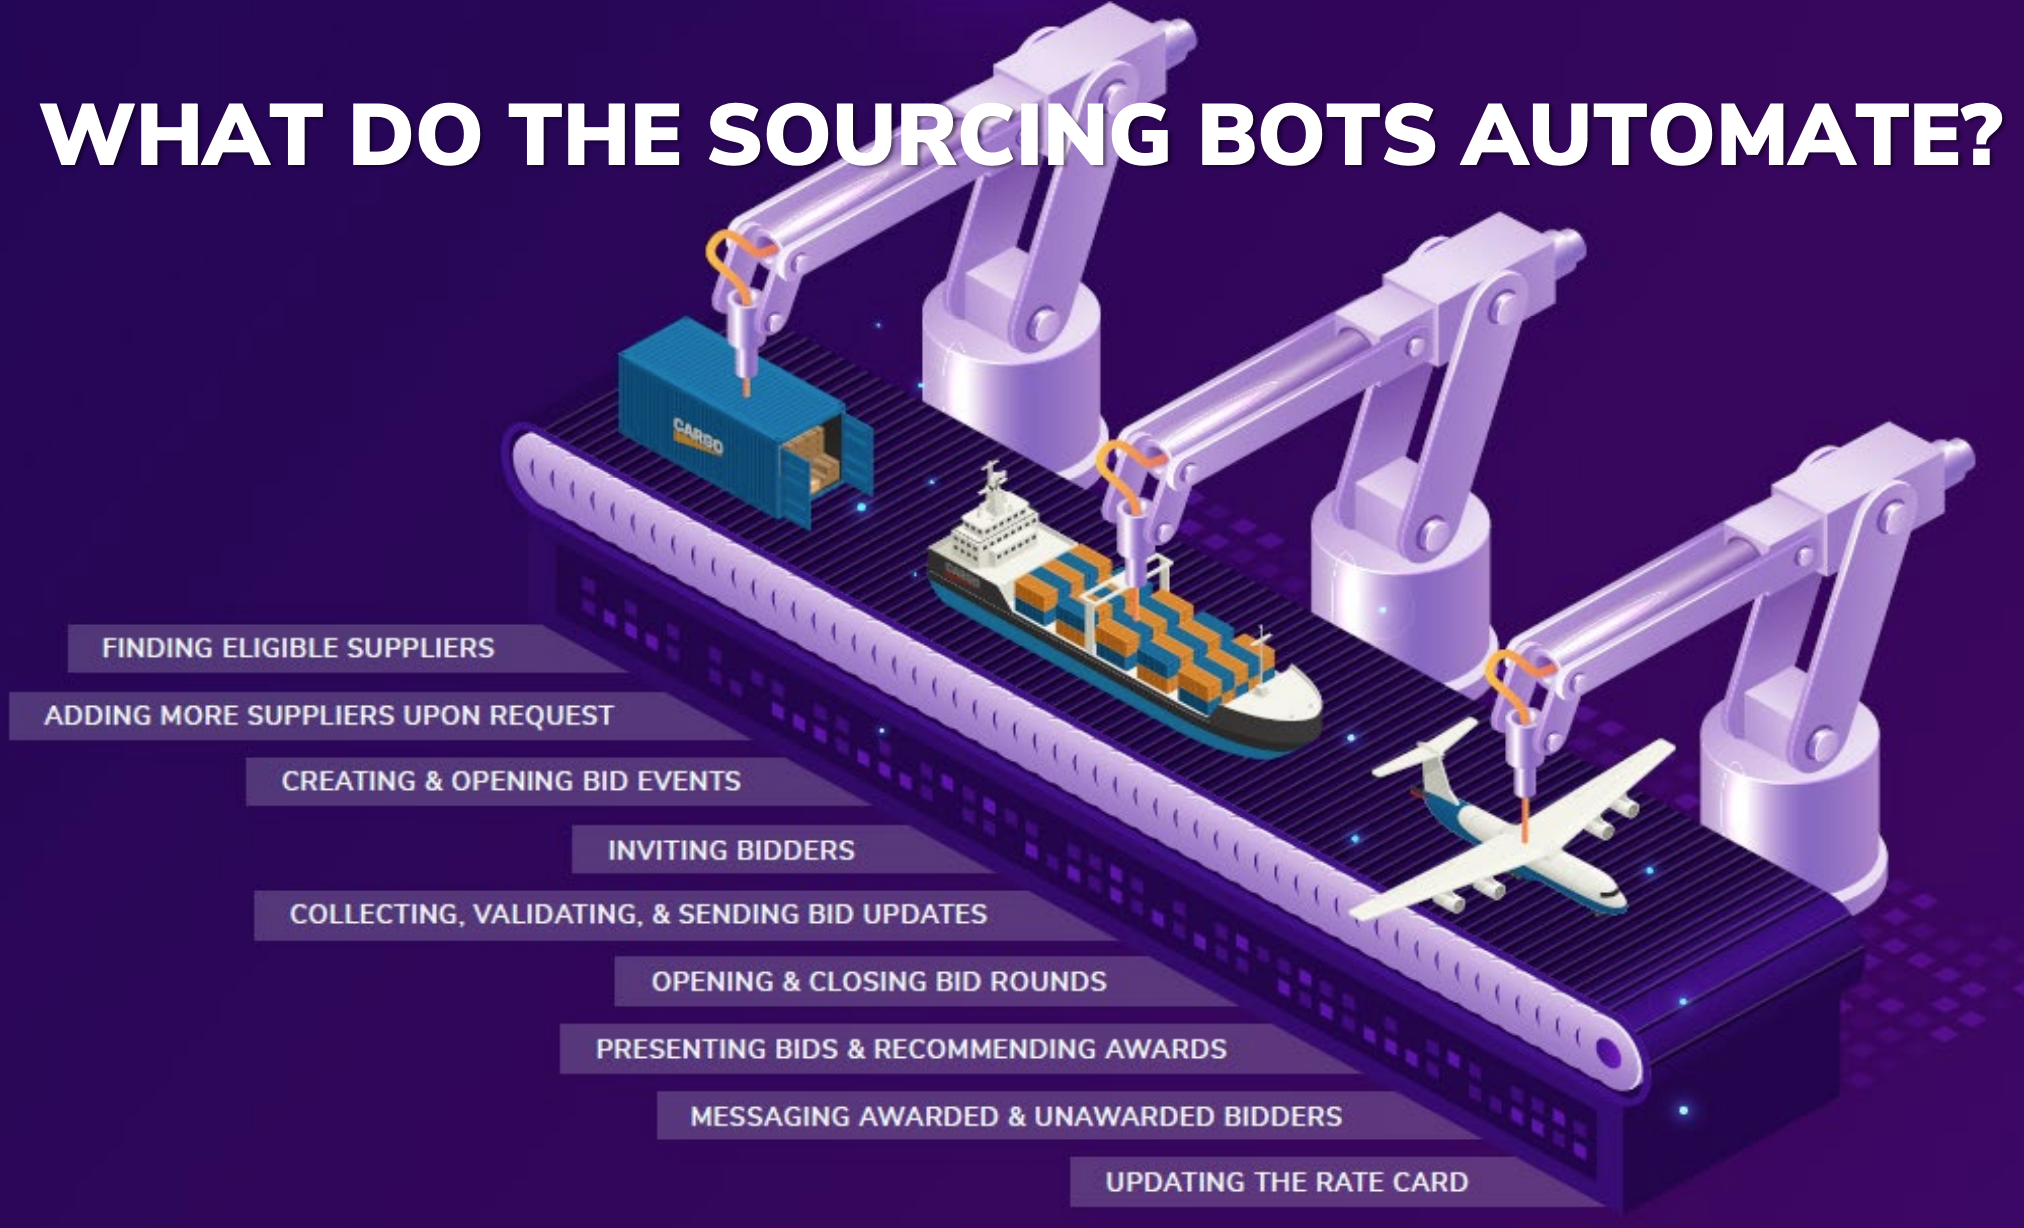 What Do The Sourcing Bots Automate